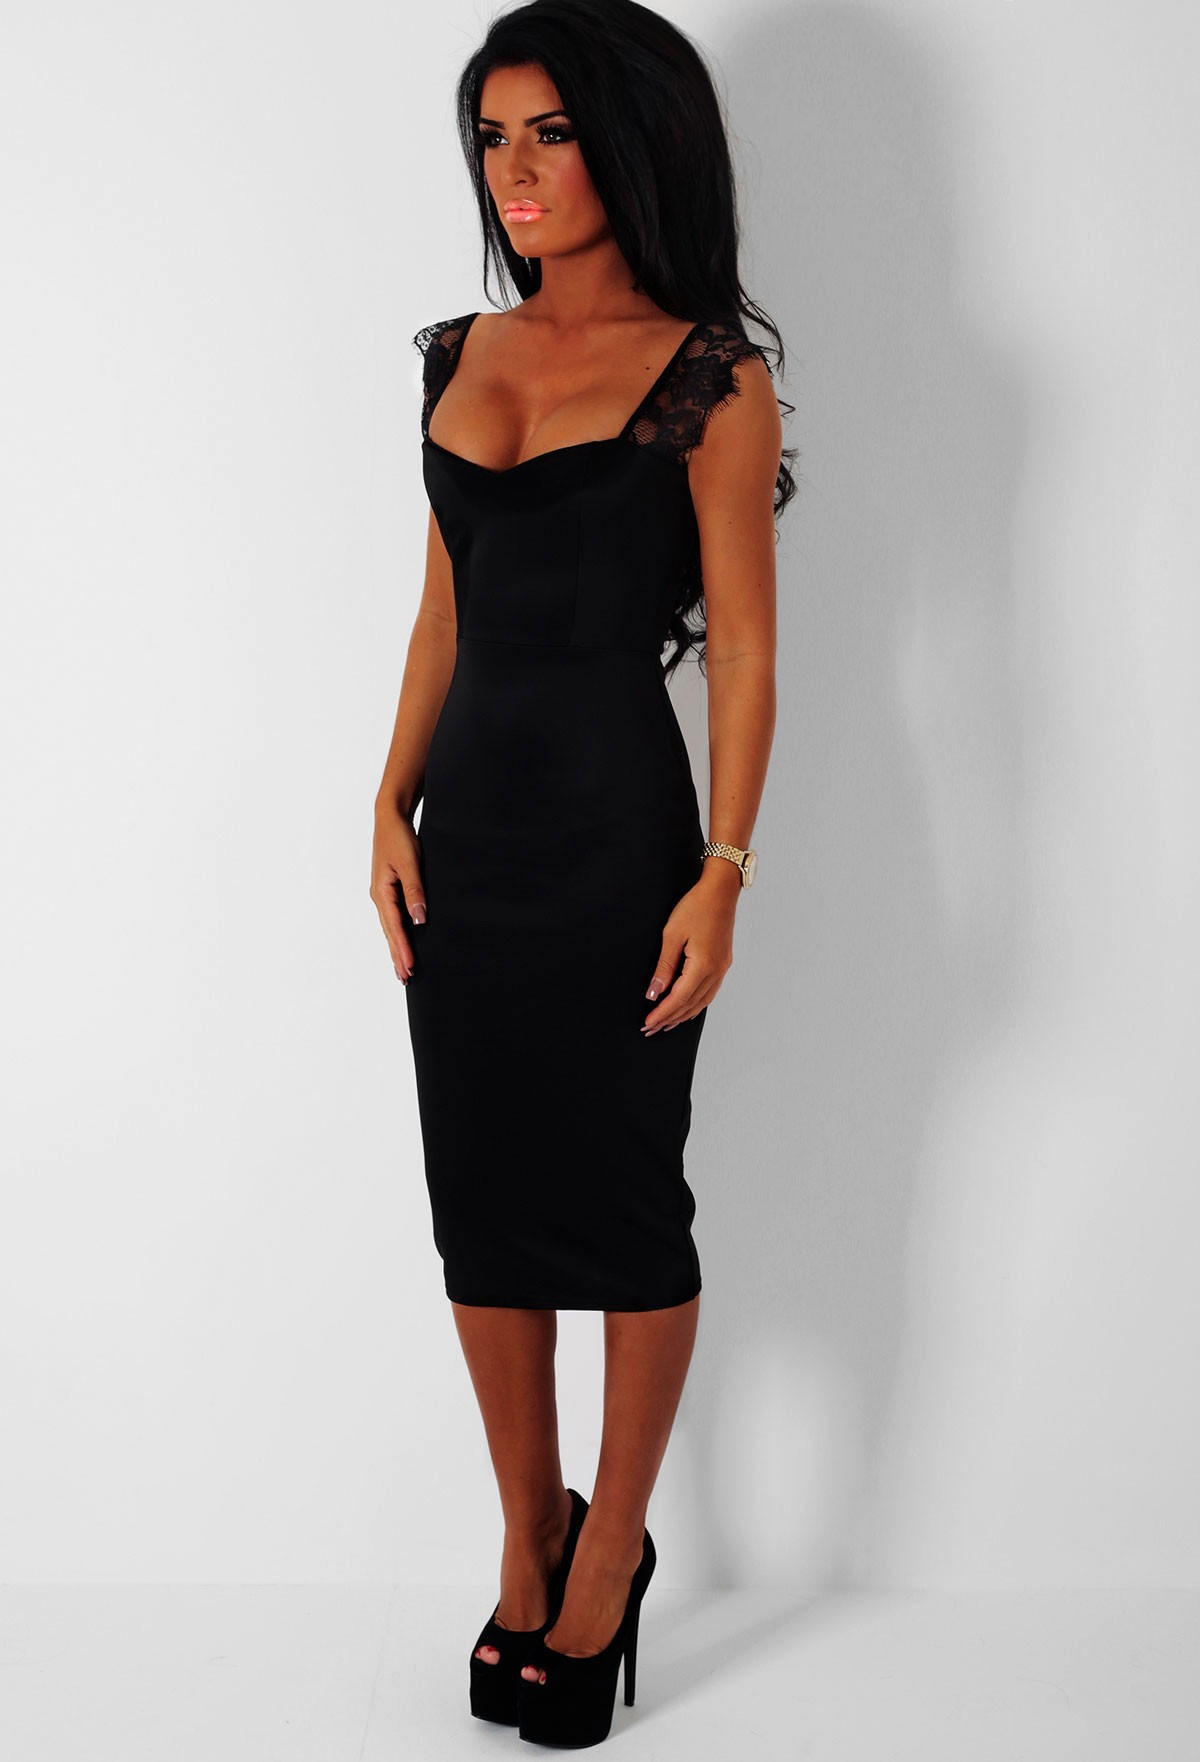 Dress: Black Midi Dress Picture Collection